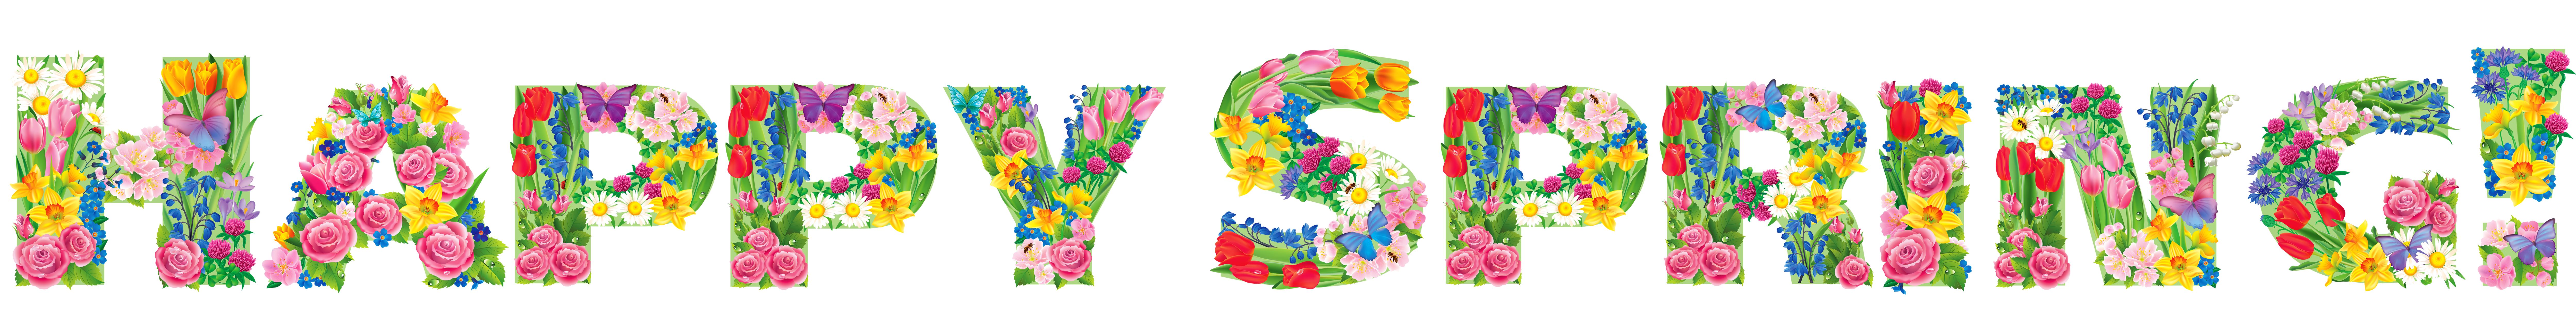 Win clipart spring. Transparent happy png picture